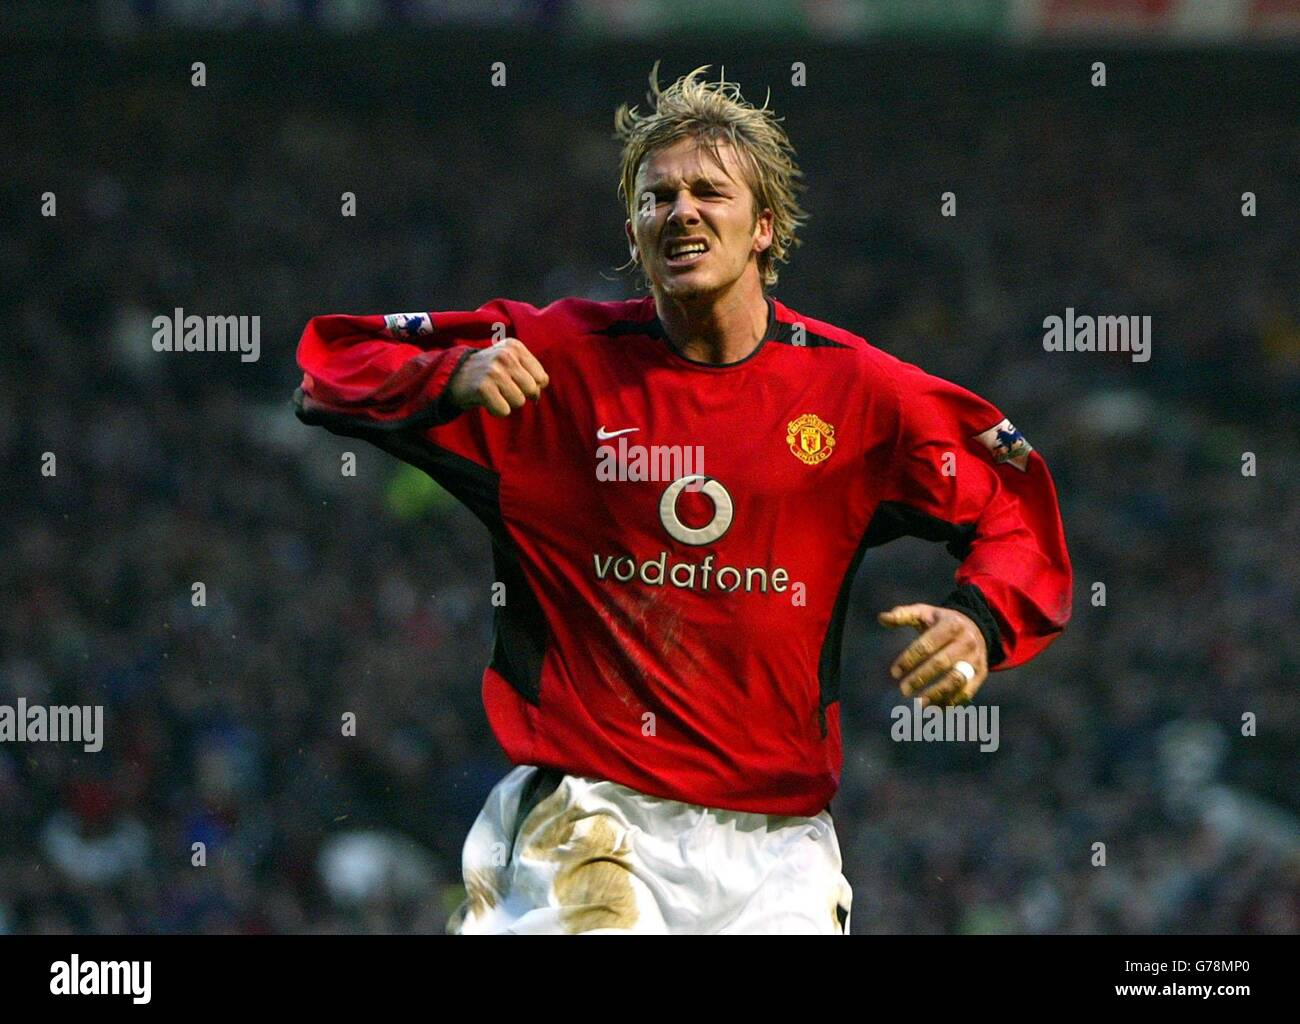 Sport Football Celebrating David Beckham Natpub Stock Photos